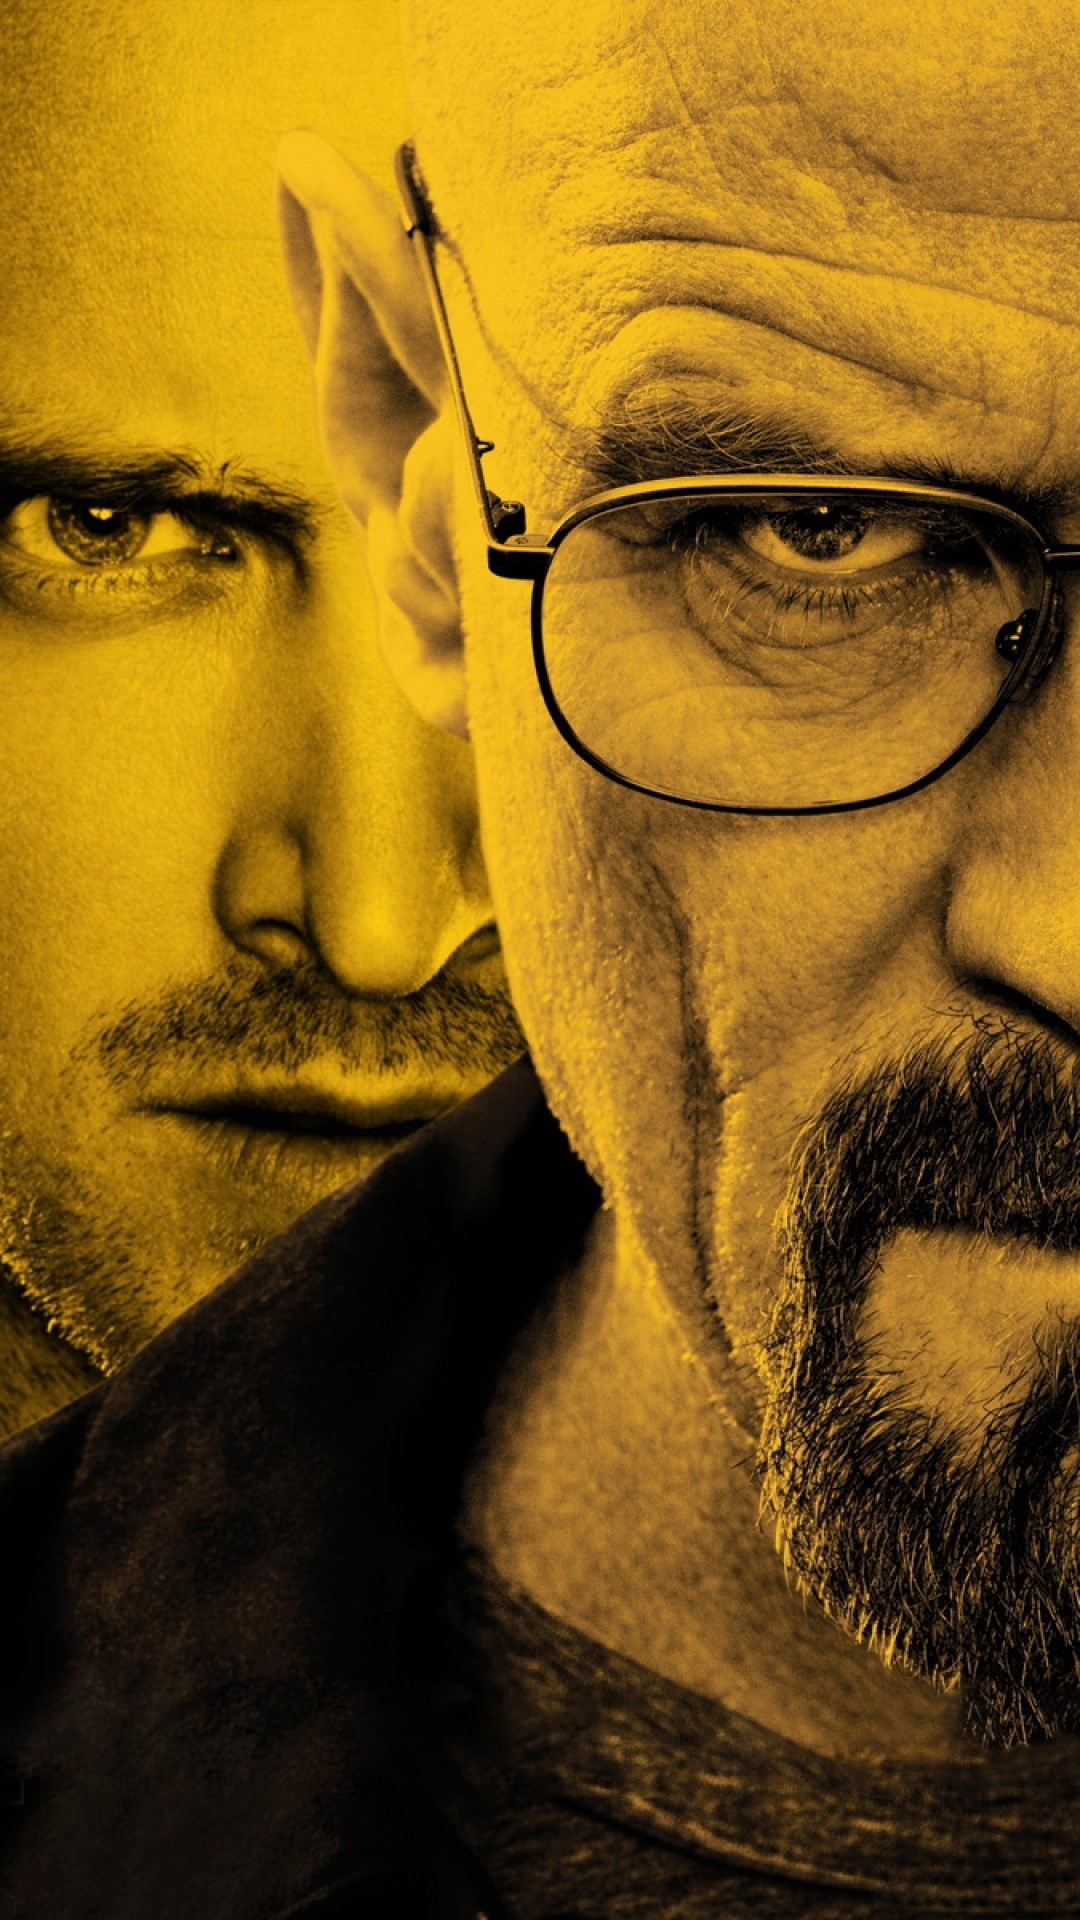 breaking bad wallpaper for iphone download free